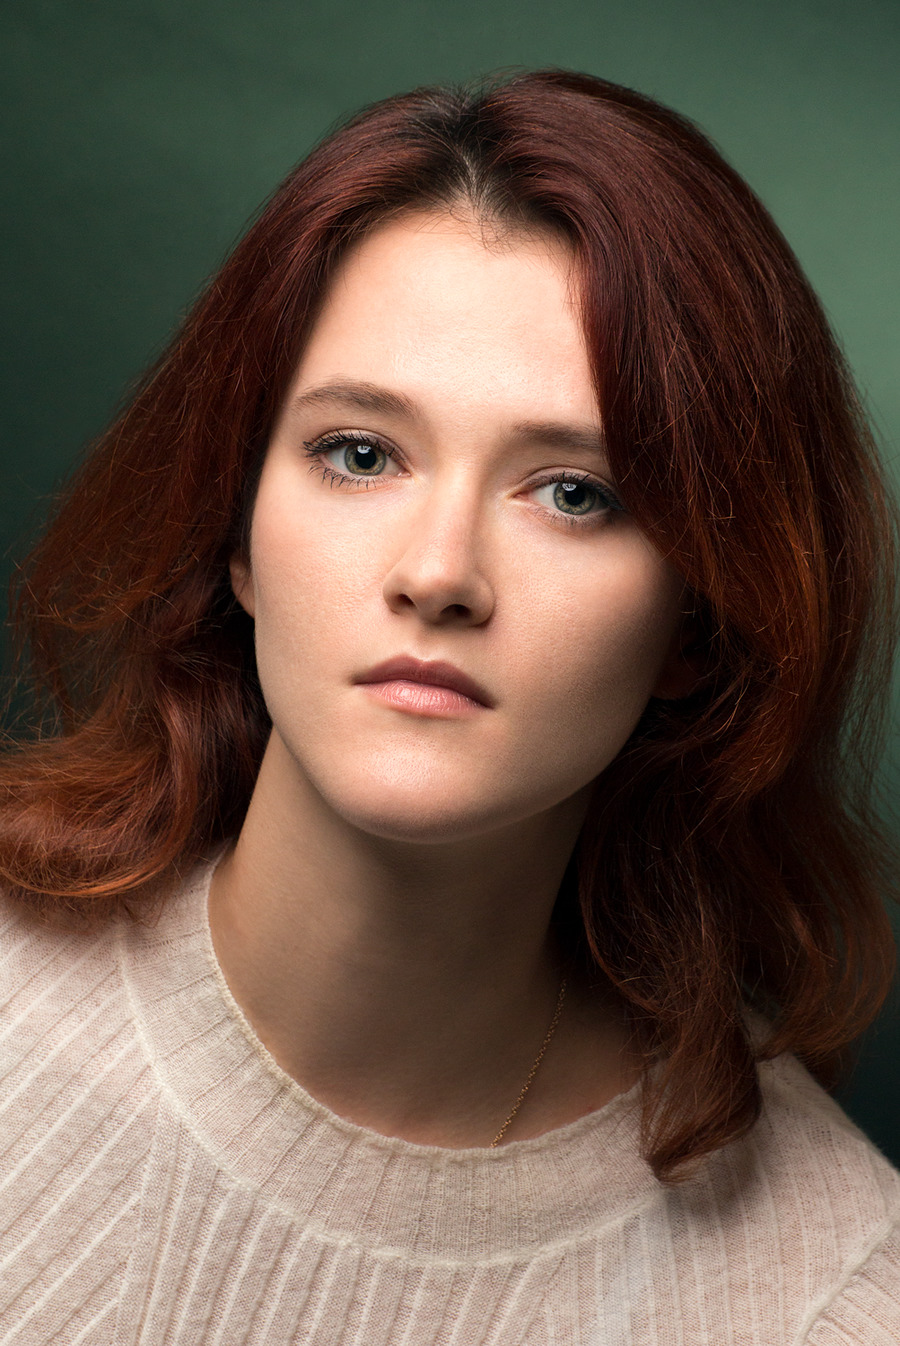 Anna / Photography by rob11, Model Anna Ginger / Uploaded 14th November 2020 @ 01:45 PM